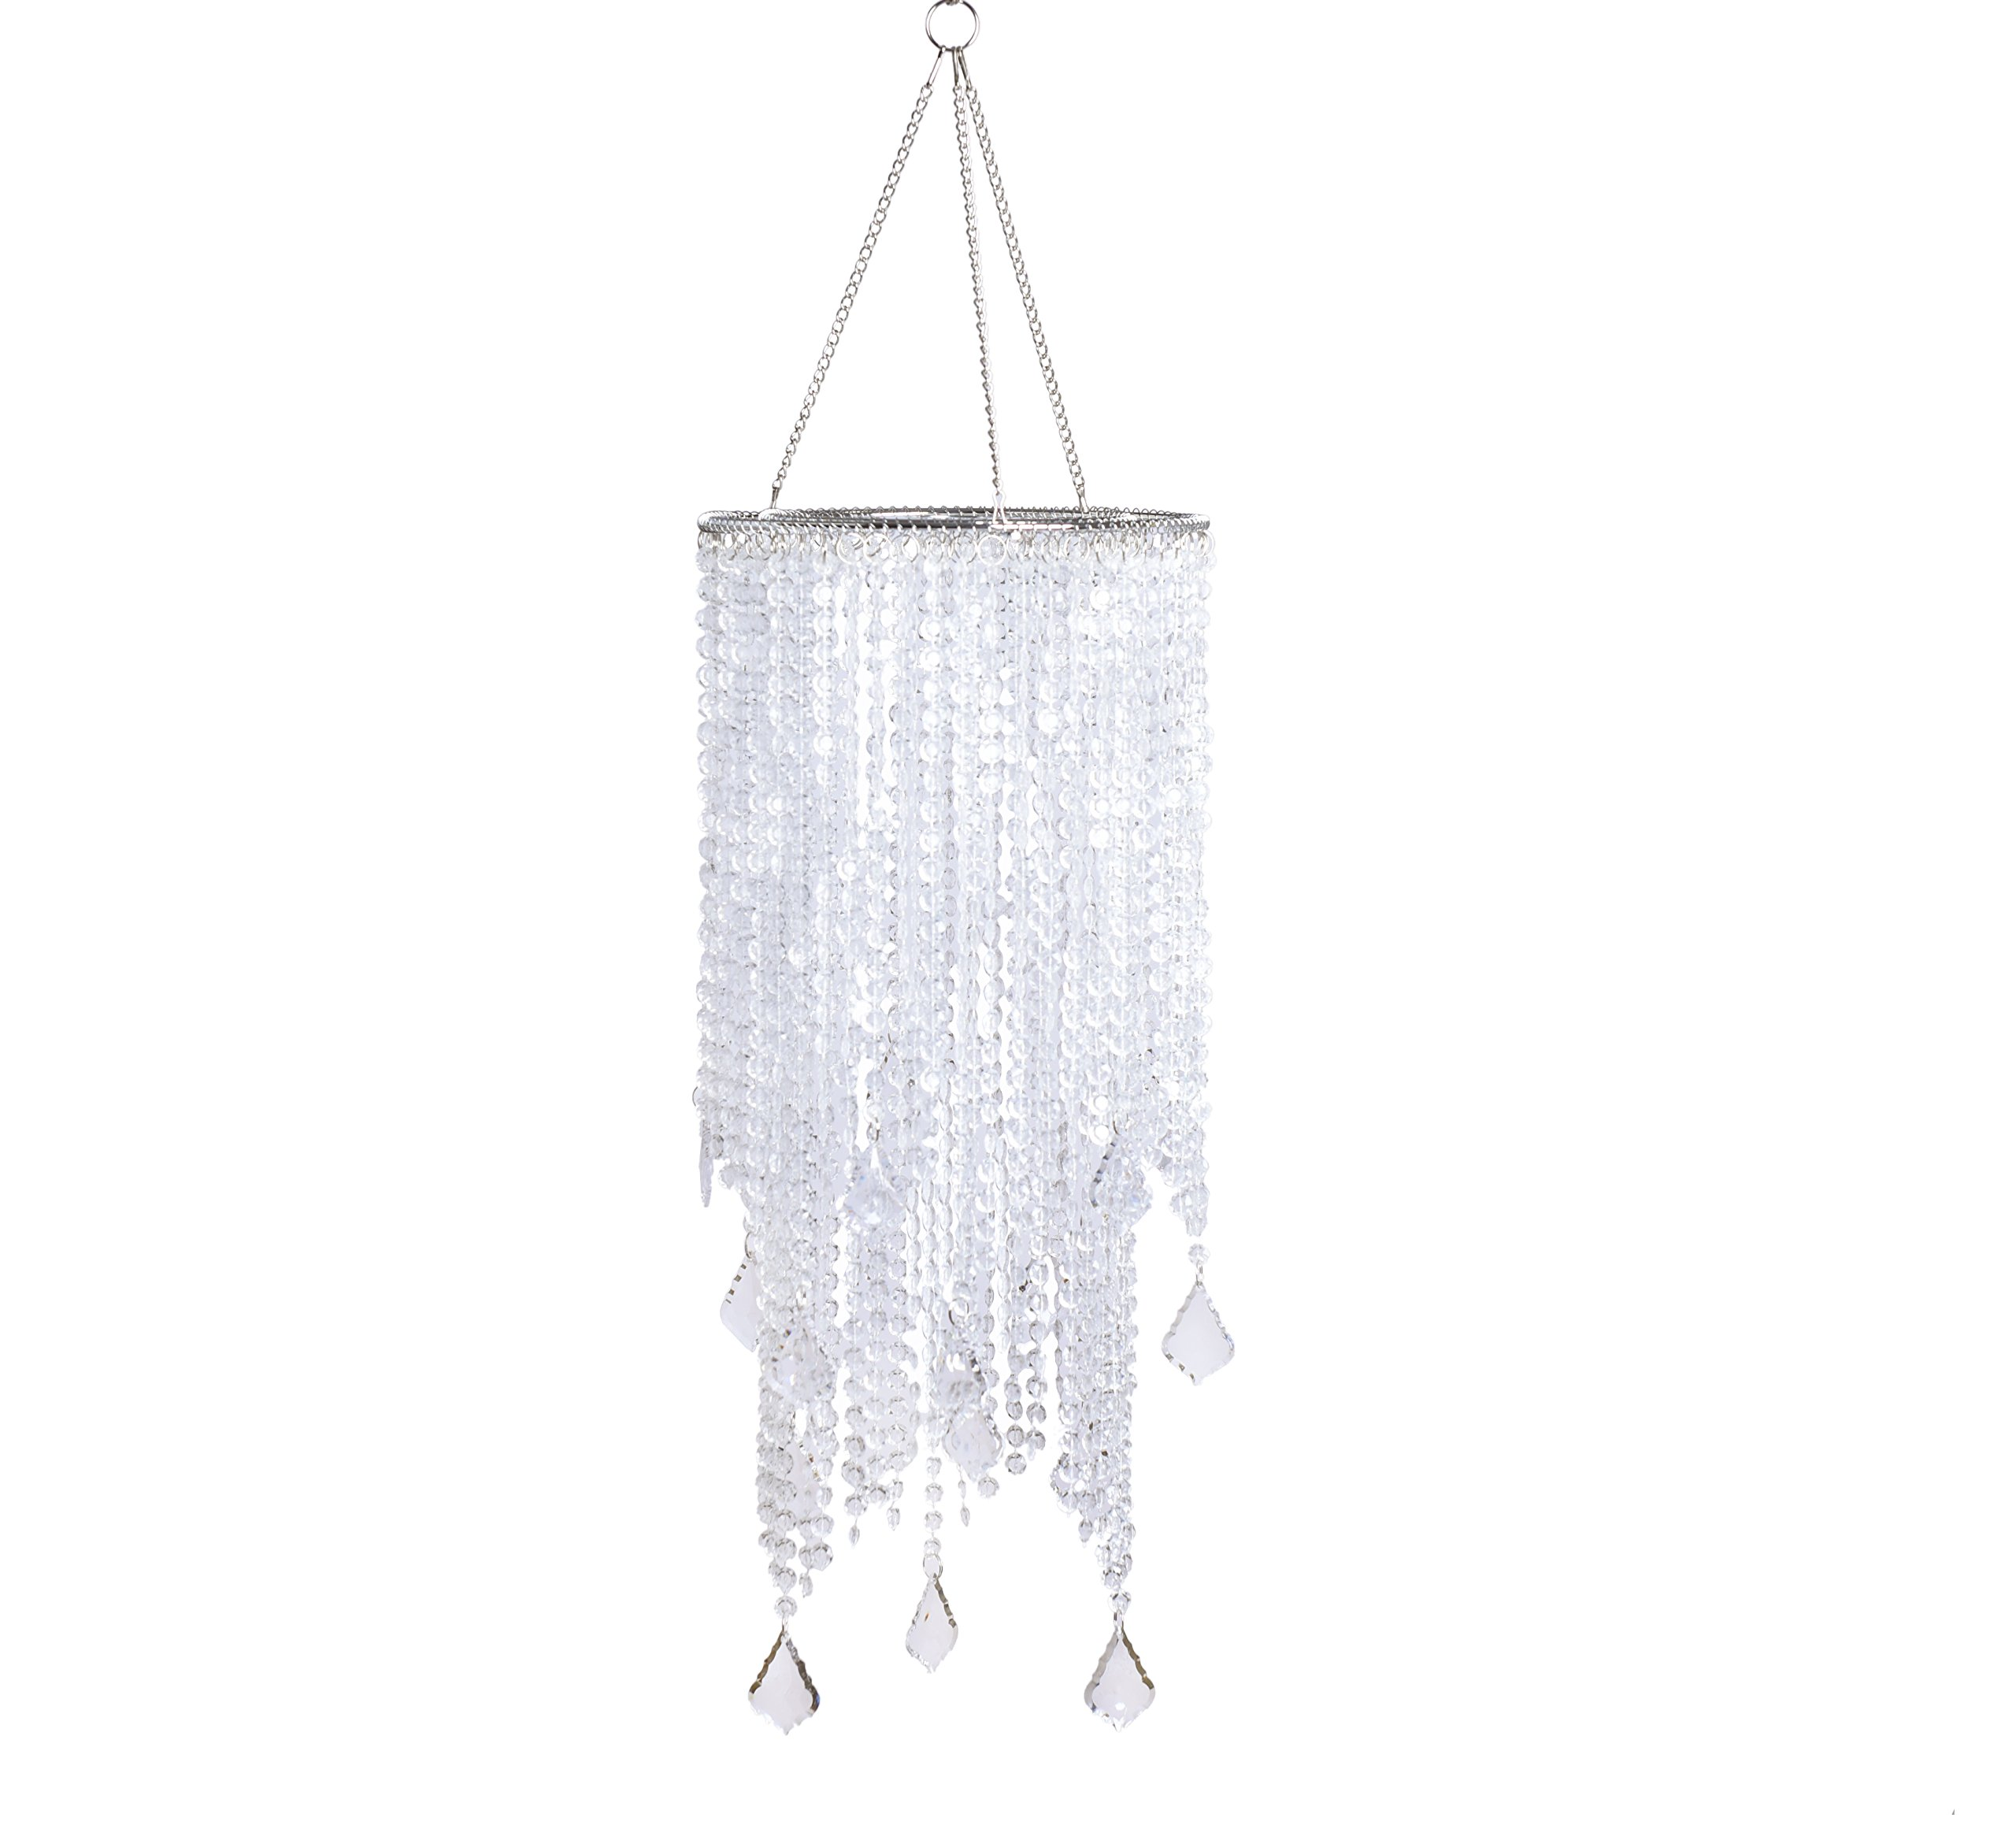 FlavorThings 2 Tiers 20.5'' Tall Clear Beaded Hanging Chandelier,Great idea for Wedding Chandeliers Centerpieces Decorations and Any Event Party Decor (Clear)